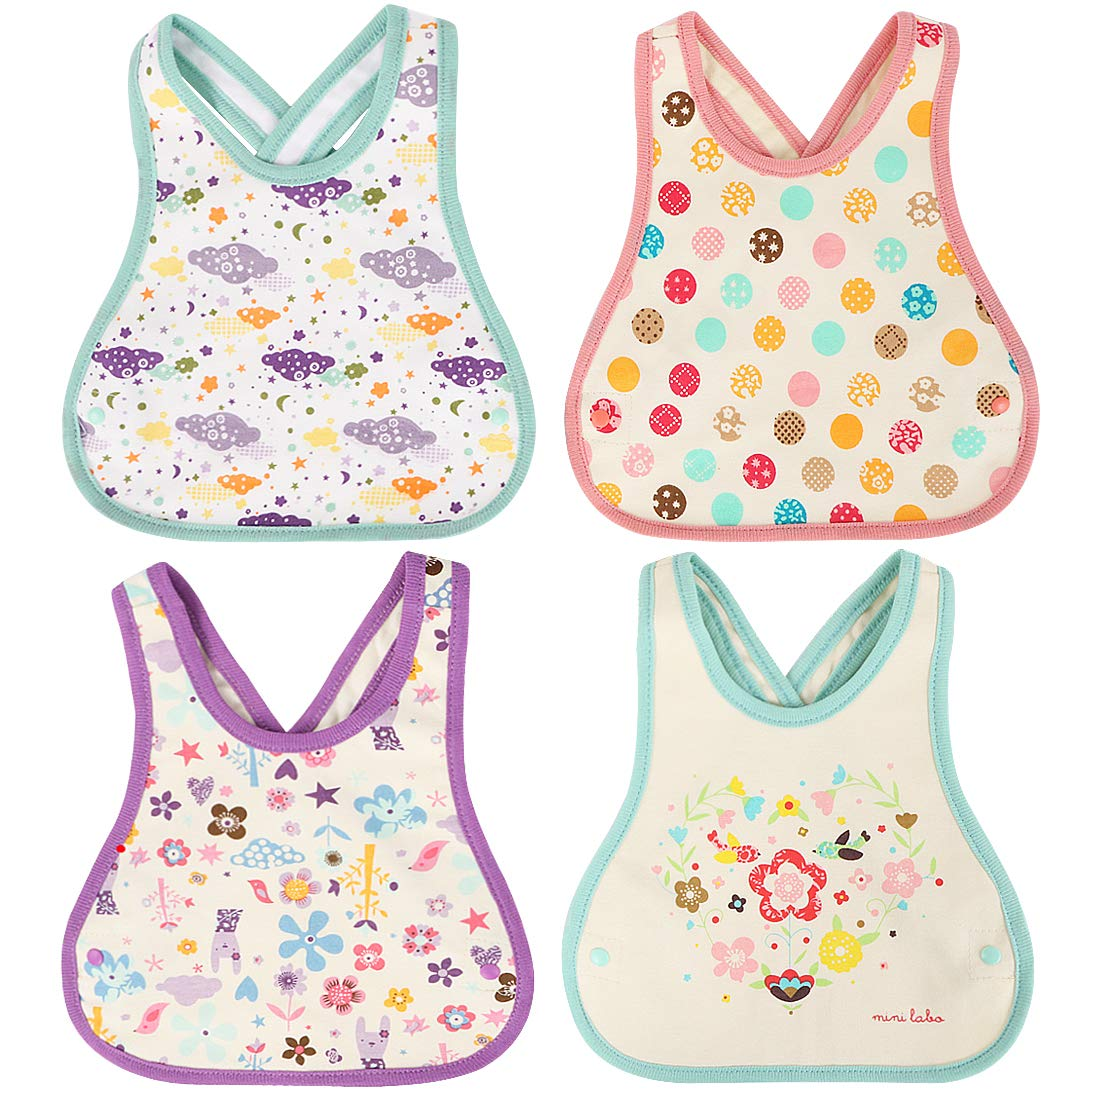 KF Baby 4pc Soft Waterproof Cotton Absorbent Wrap Snap Lock Drooler Bibs Set kilofly